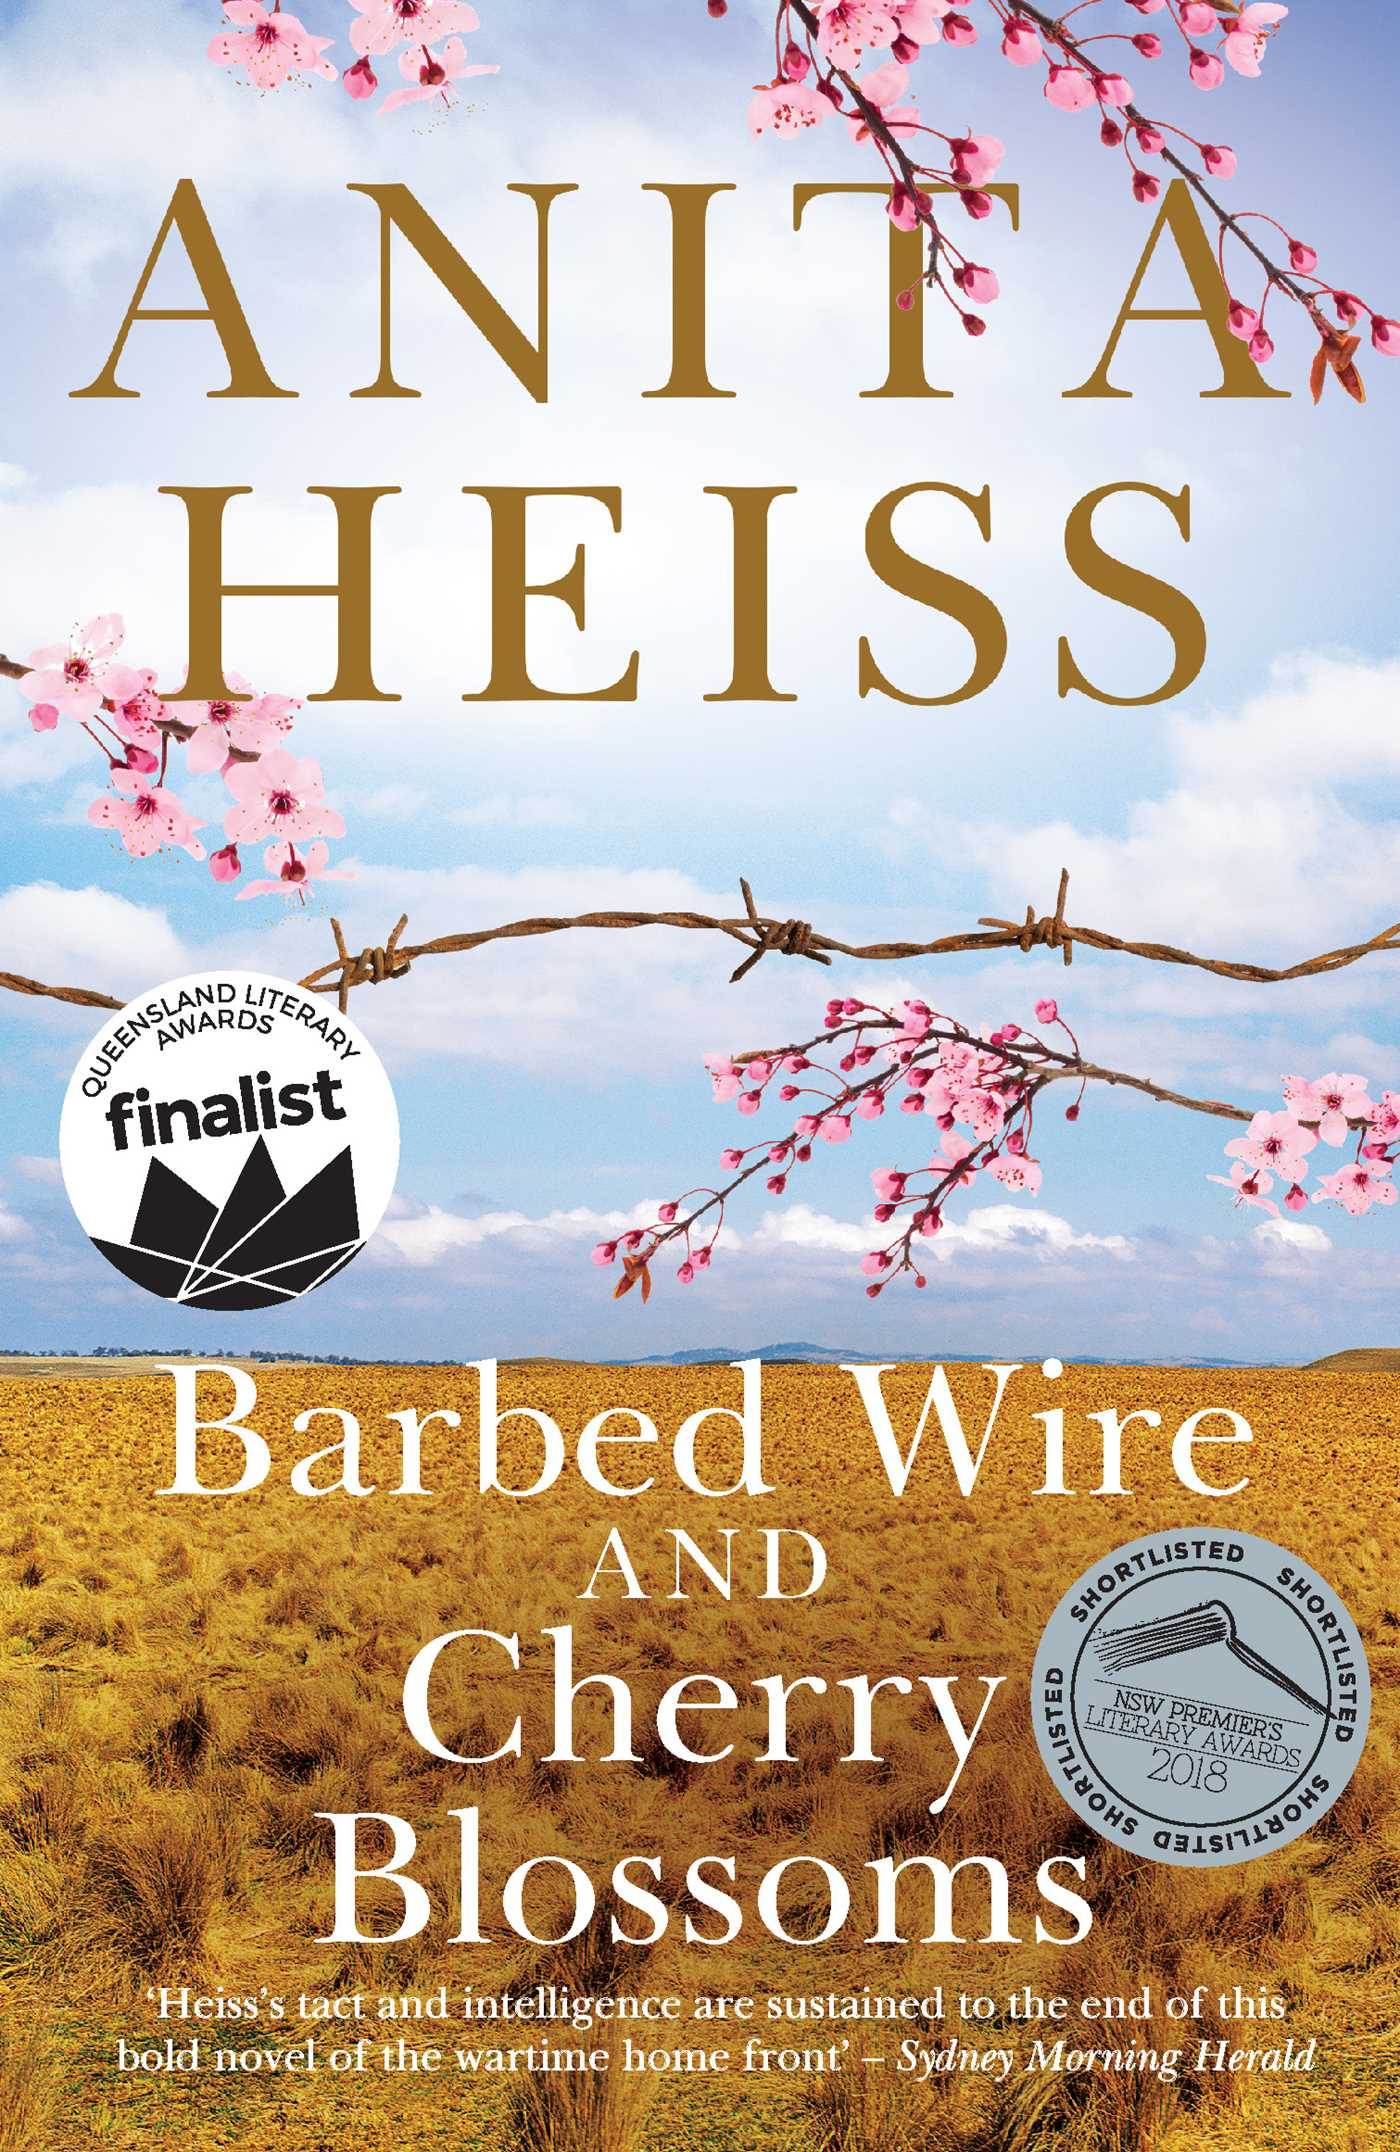 Barbed wire and cherry blossoms 9781925184853 hr